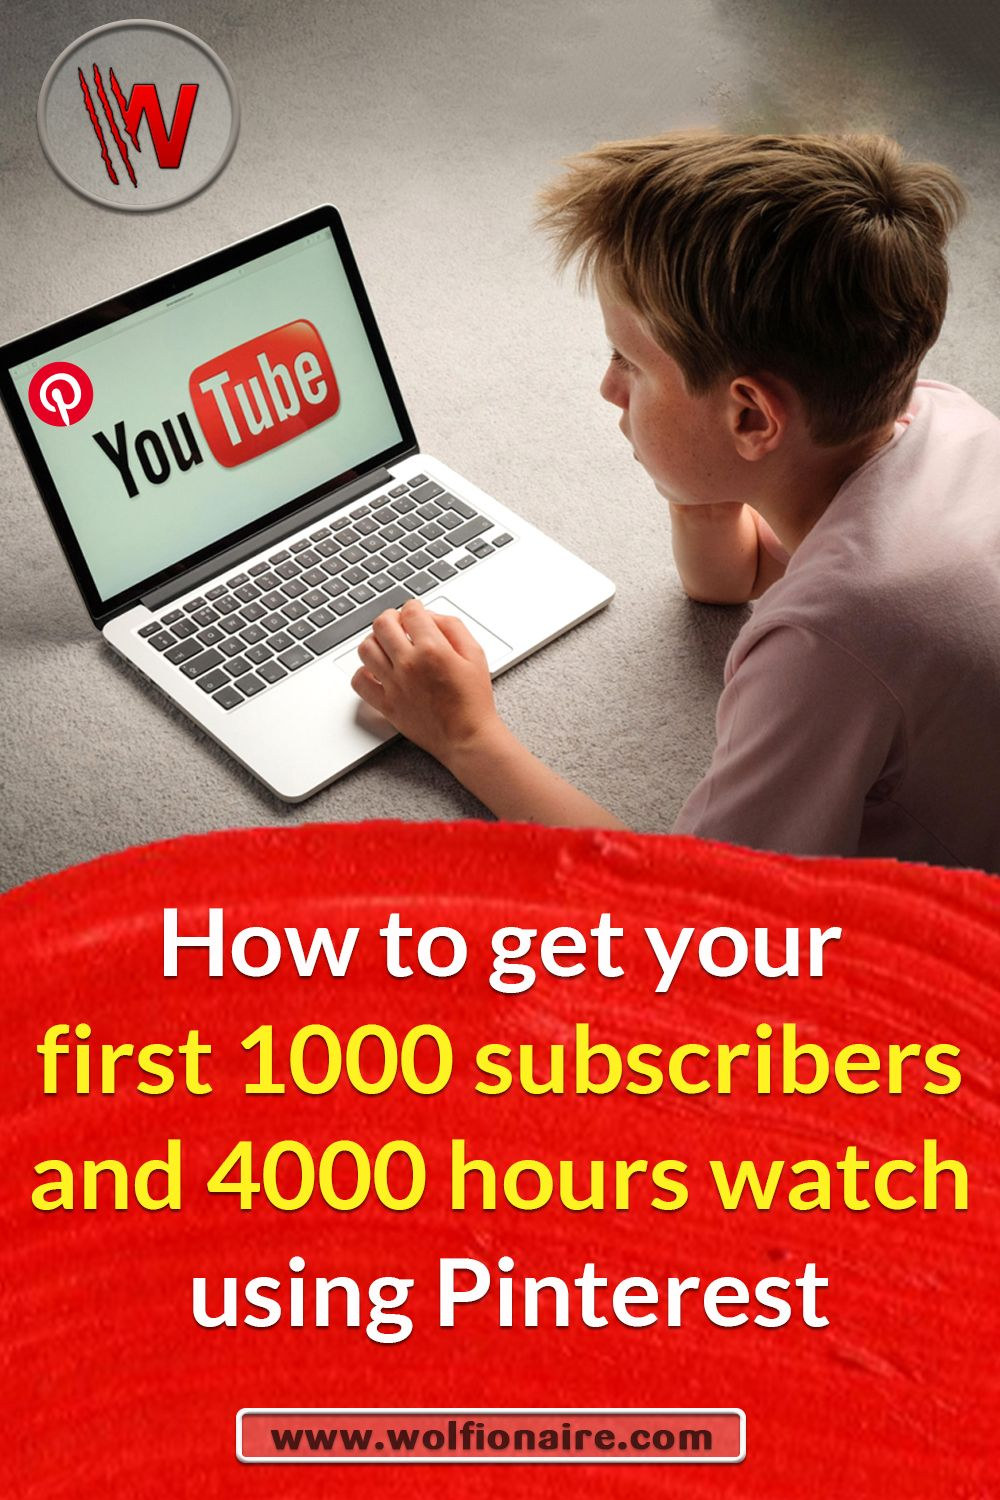 How to get your first 1000 subscribers and 4000 hours watch using Pinterest